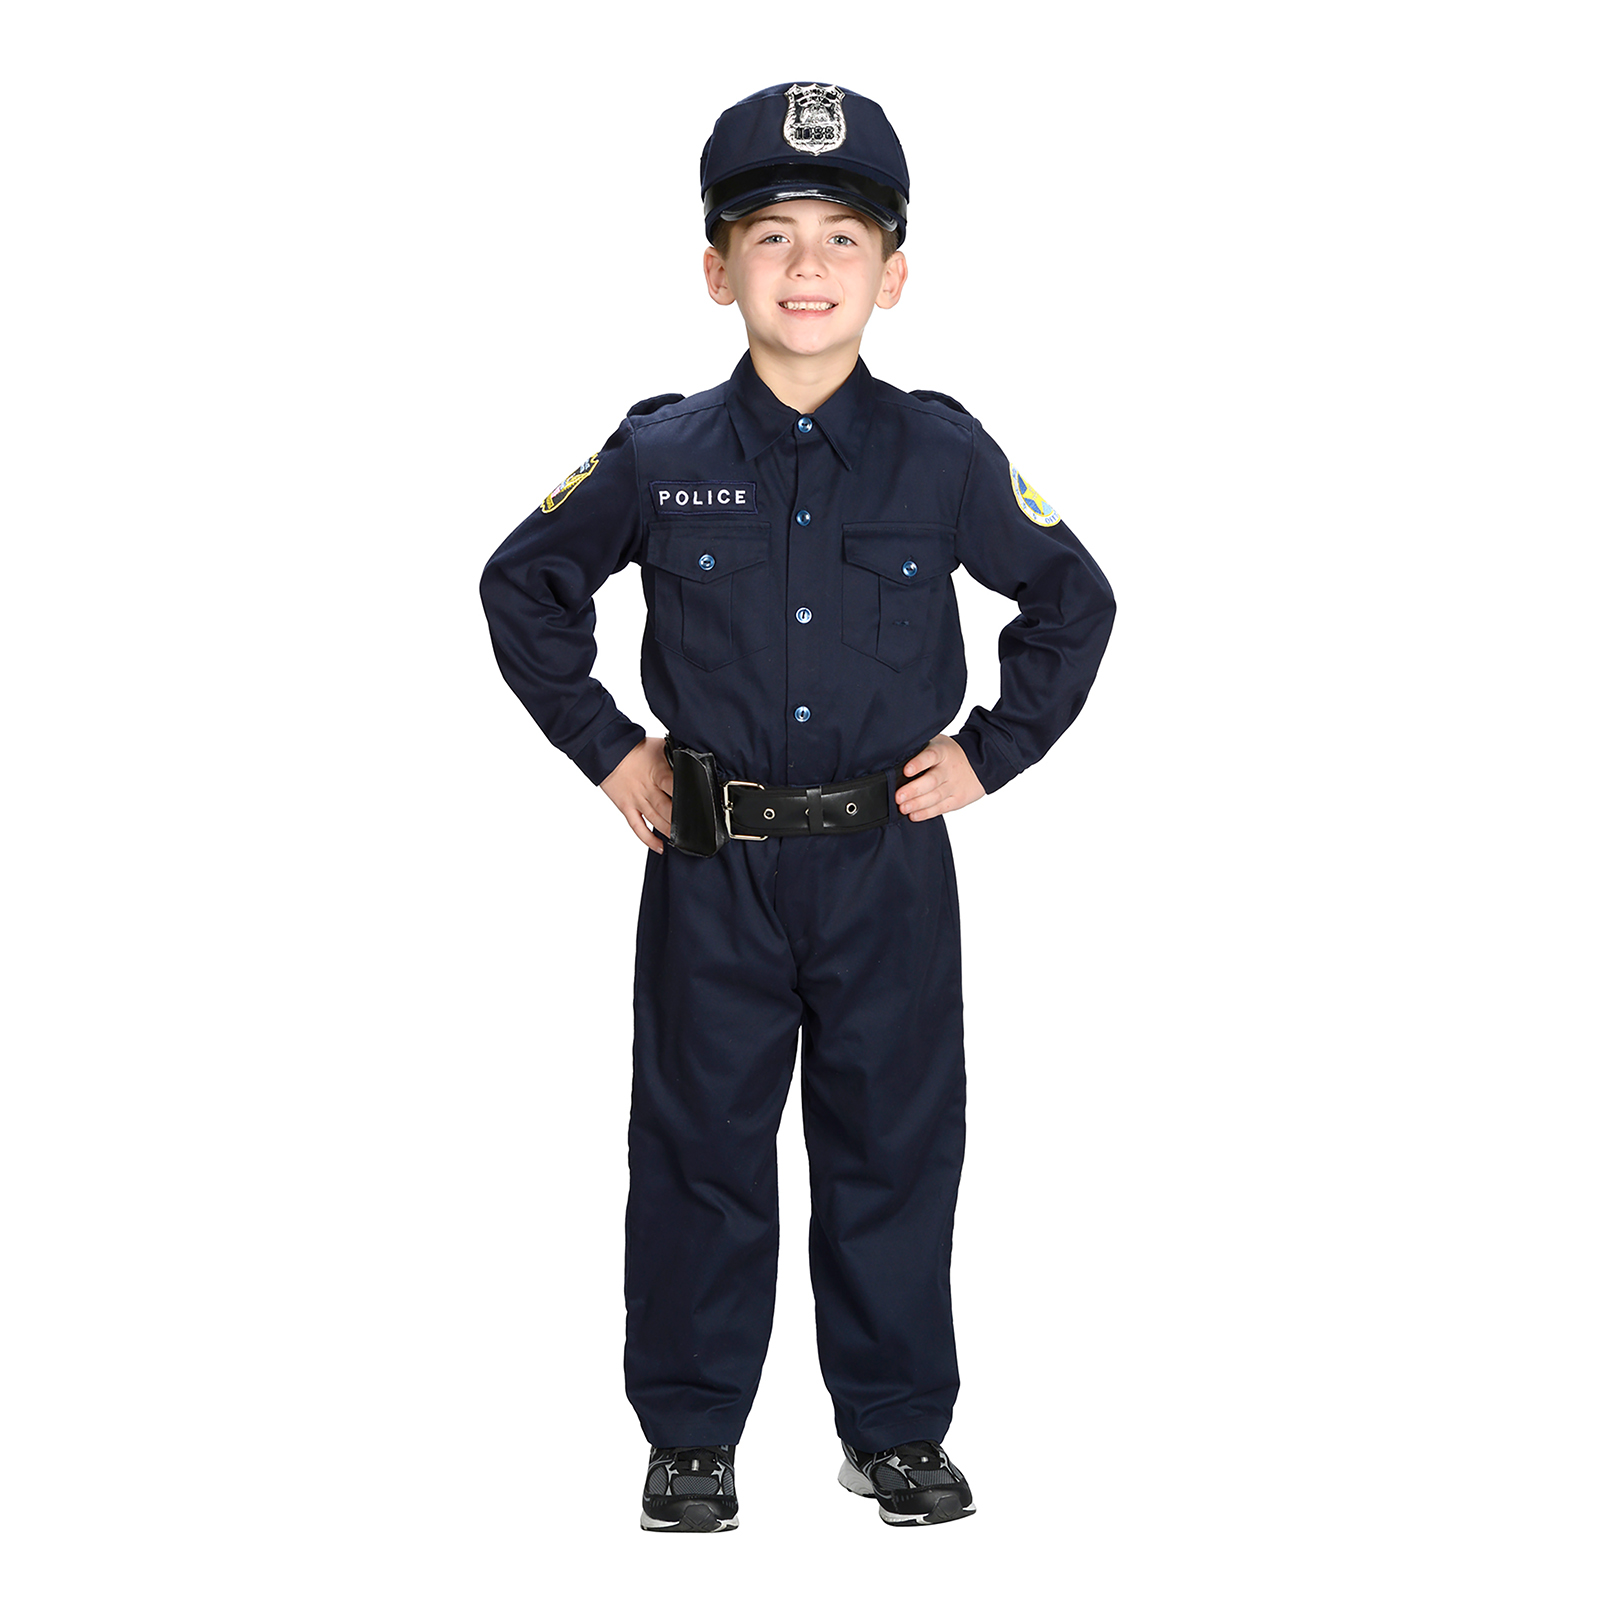 Aeromax Jr. Police Officer Suit Costume ...  sc 1 st  Nextag & Kids police officer costume | Compare Prices at Nextag